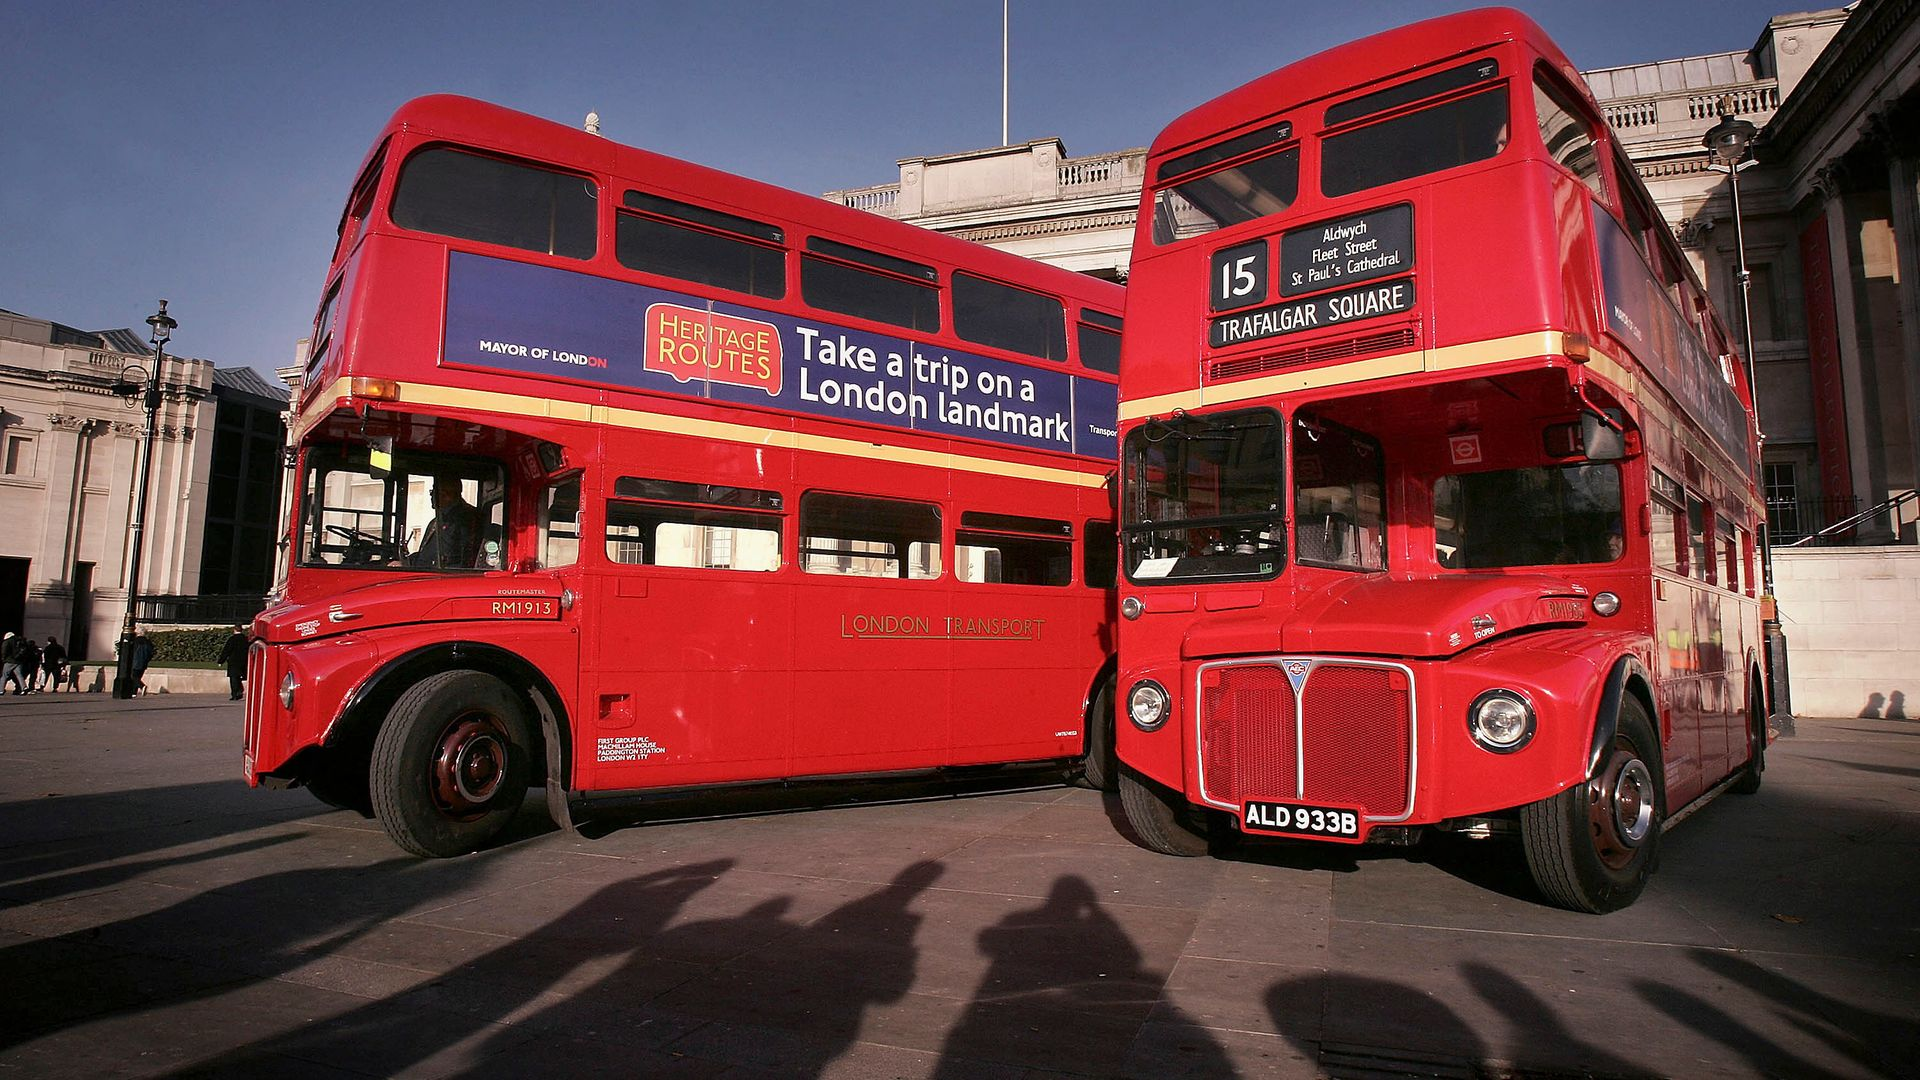 The vintage, refurbished Routemaster buses that are now being withdrawn - Credit: Photo by Peter Macdiarmid/Getty Images